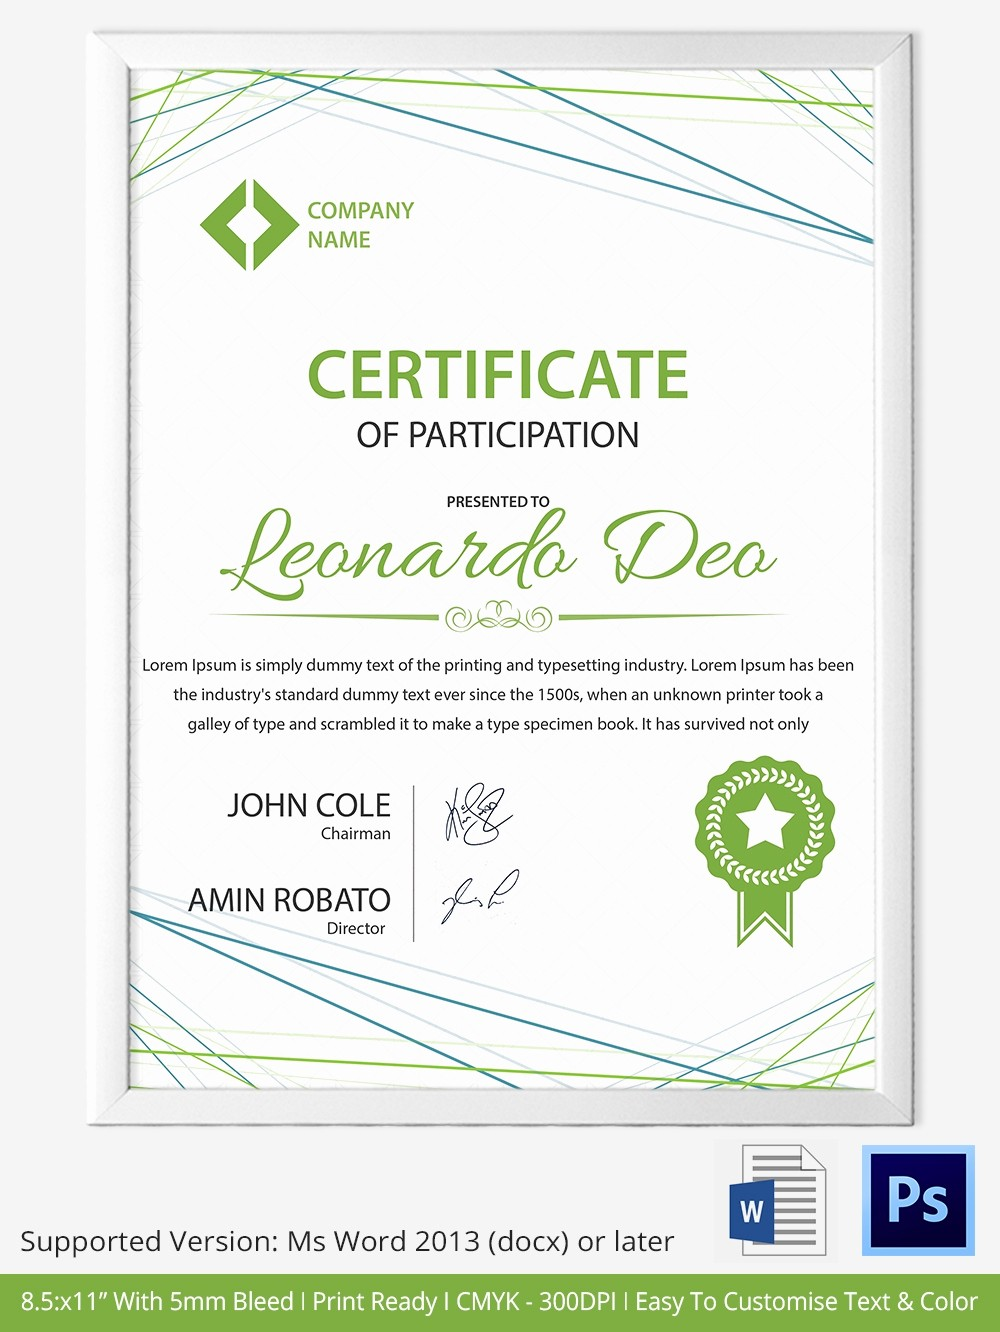 How to Design A Certificate New 33 Psd Certificate Templates – Free Psd format Download